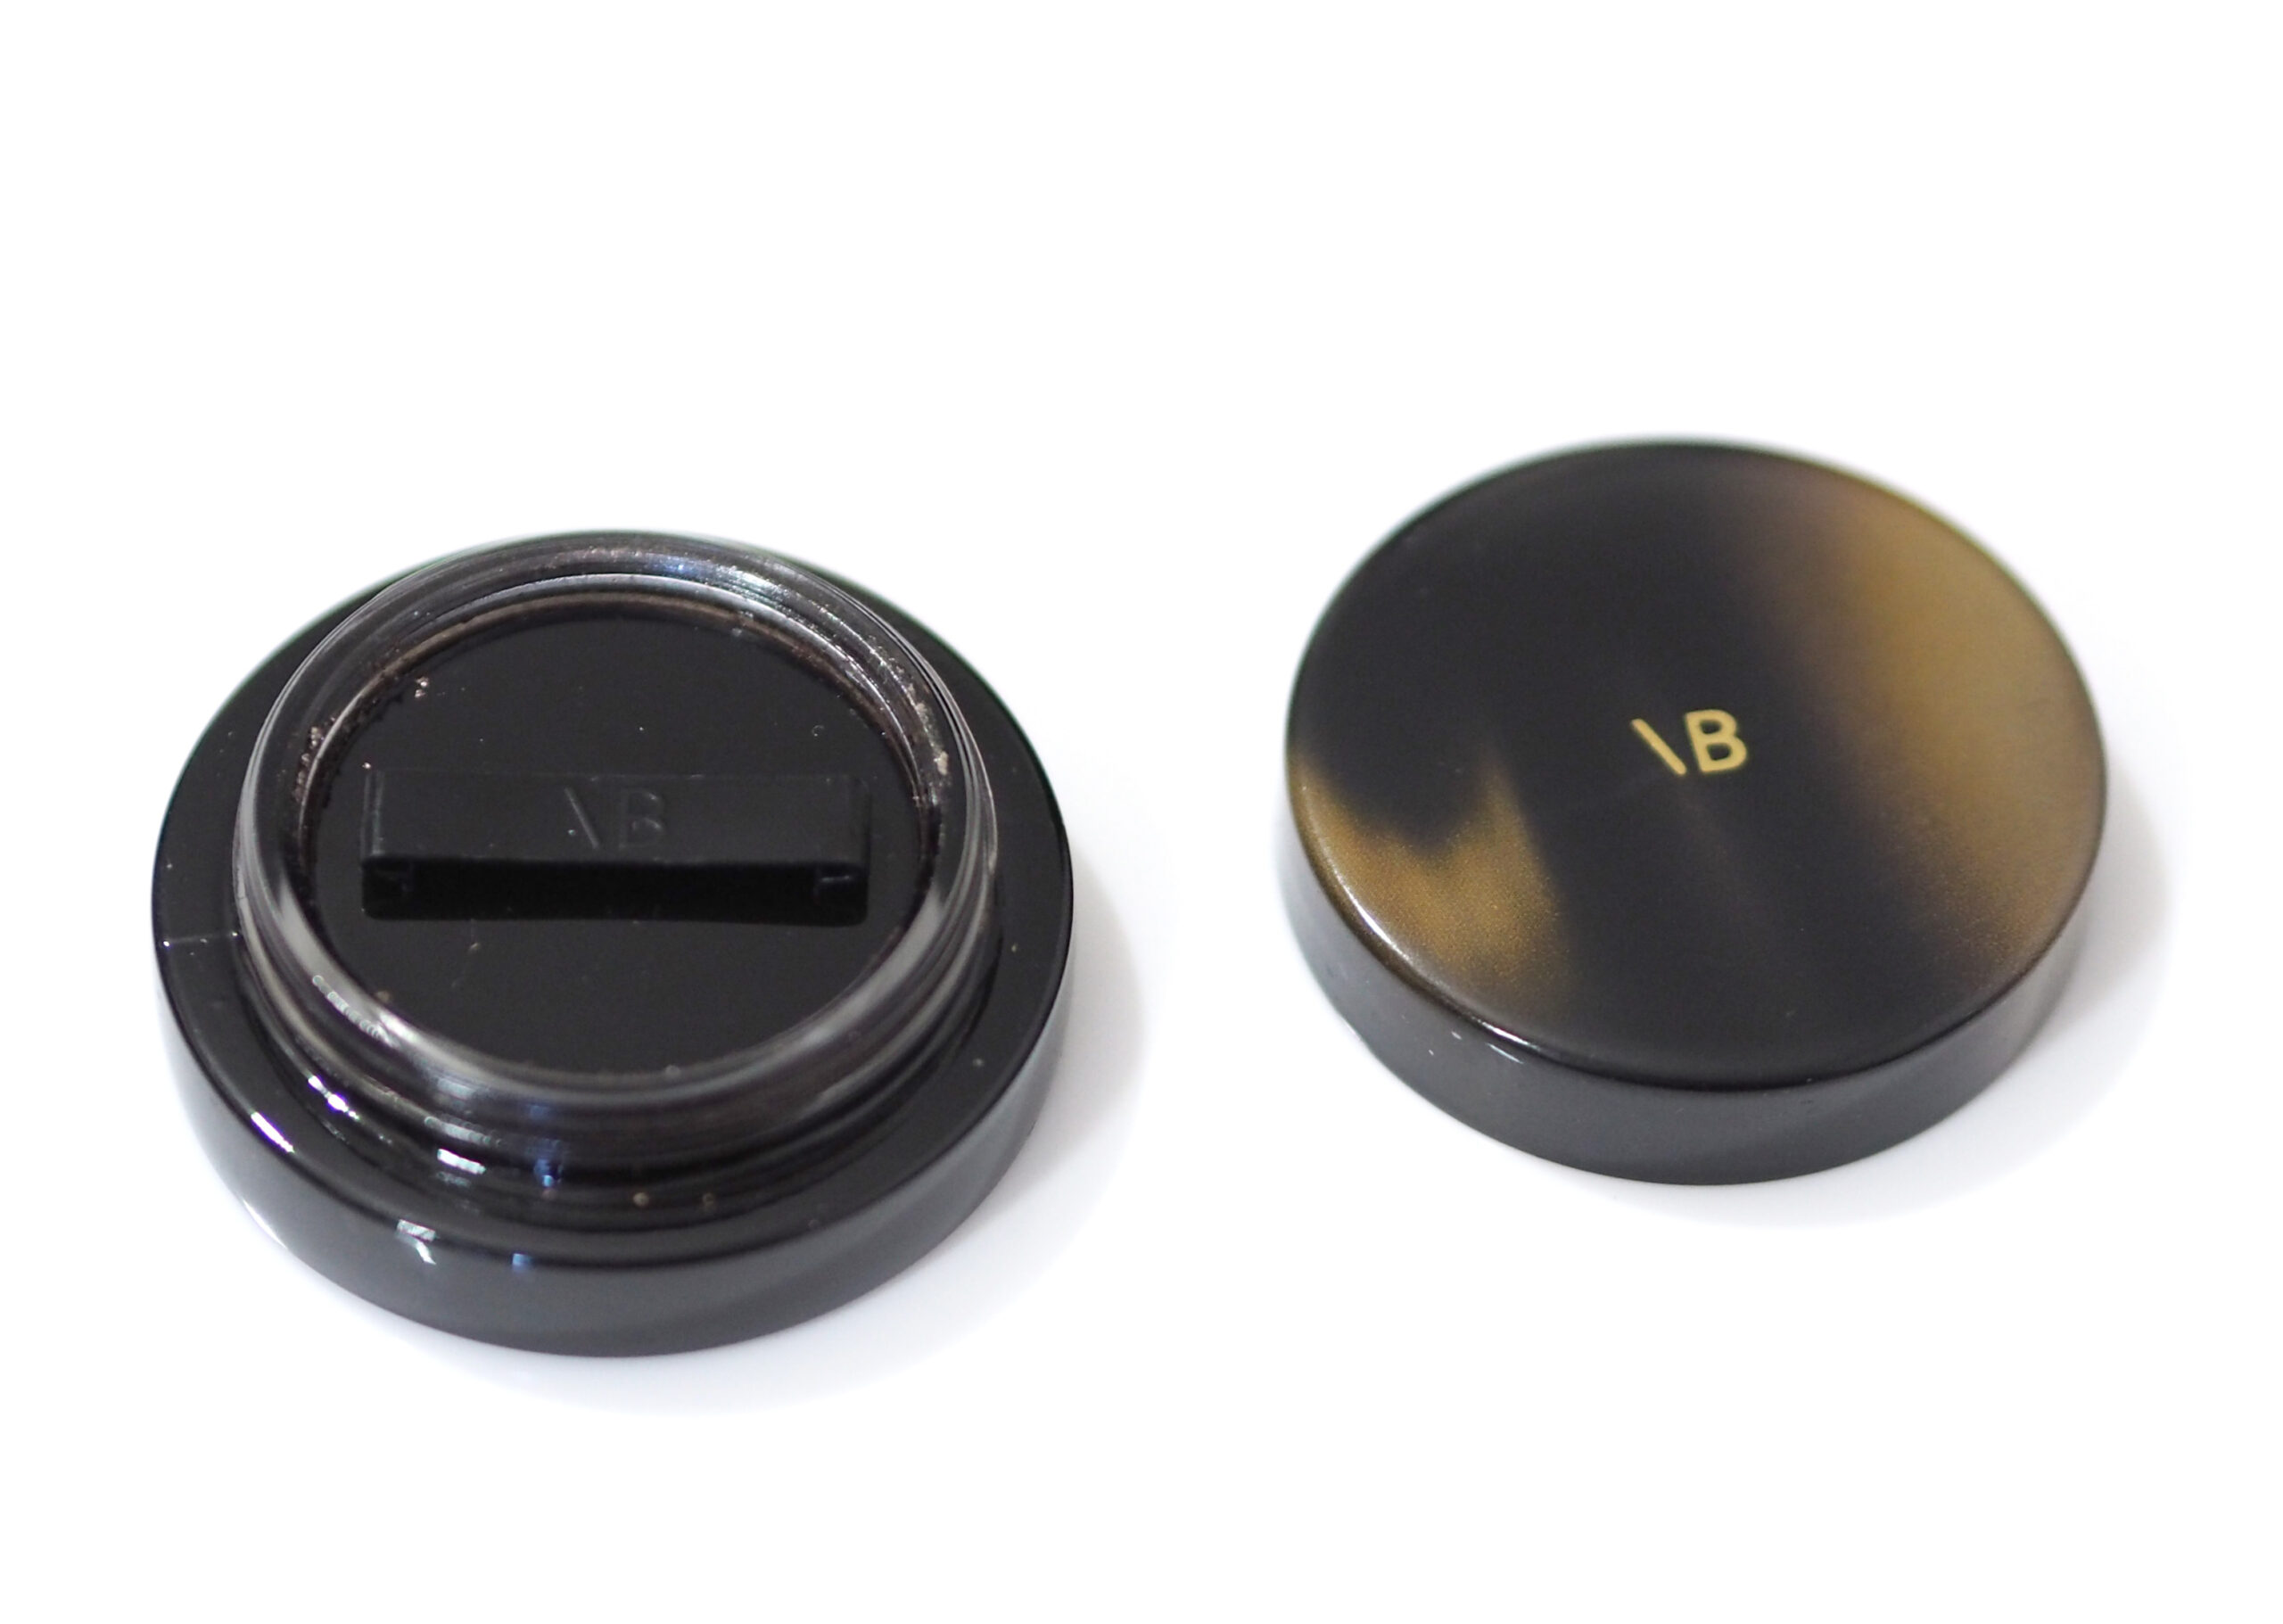 Victoria Beckham Beauty Lid Lustre Crystal Infused Eyeshadow Review / Swatches